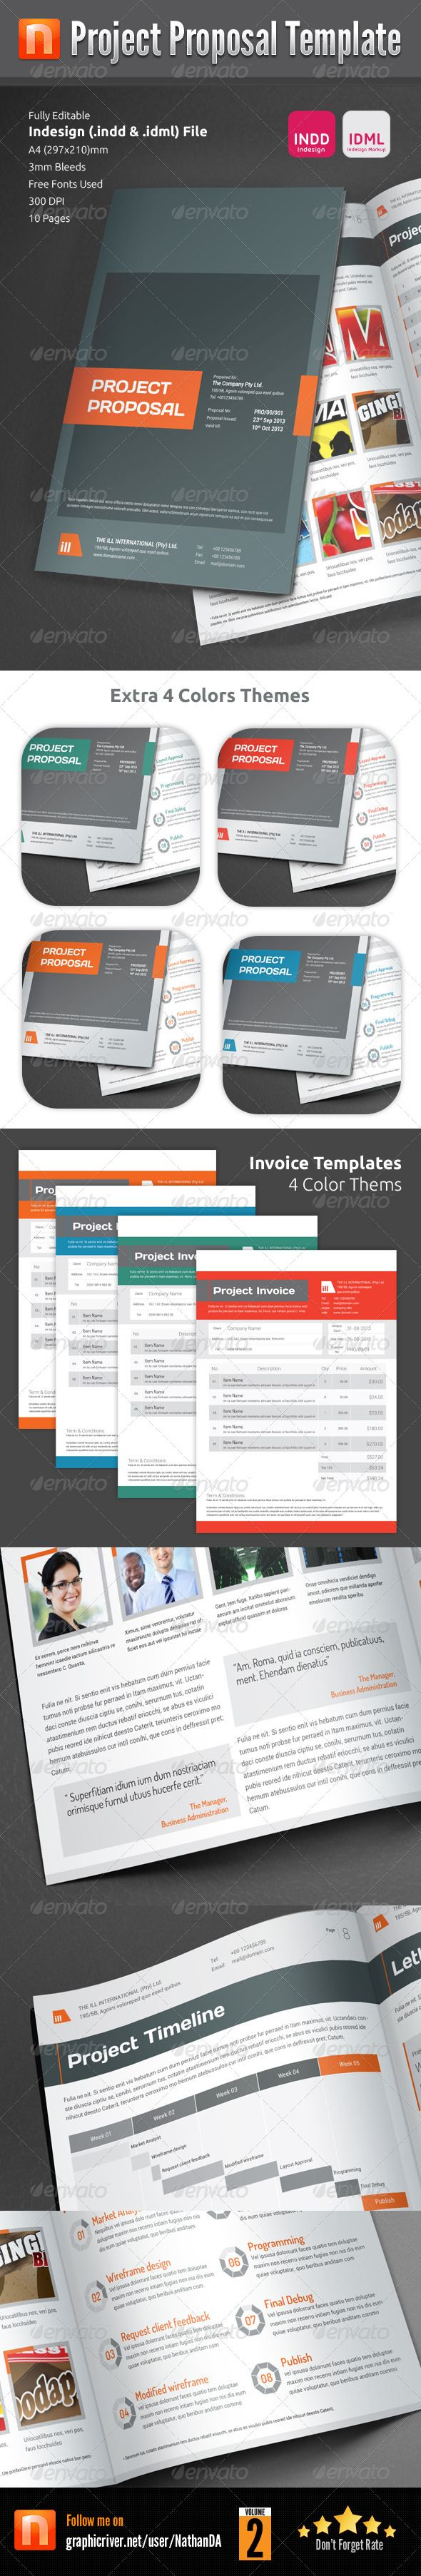 project proposal template v2 by s designers live preview project